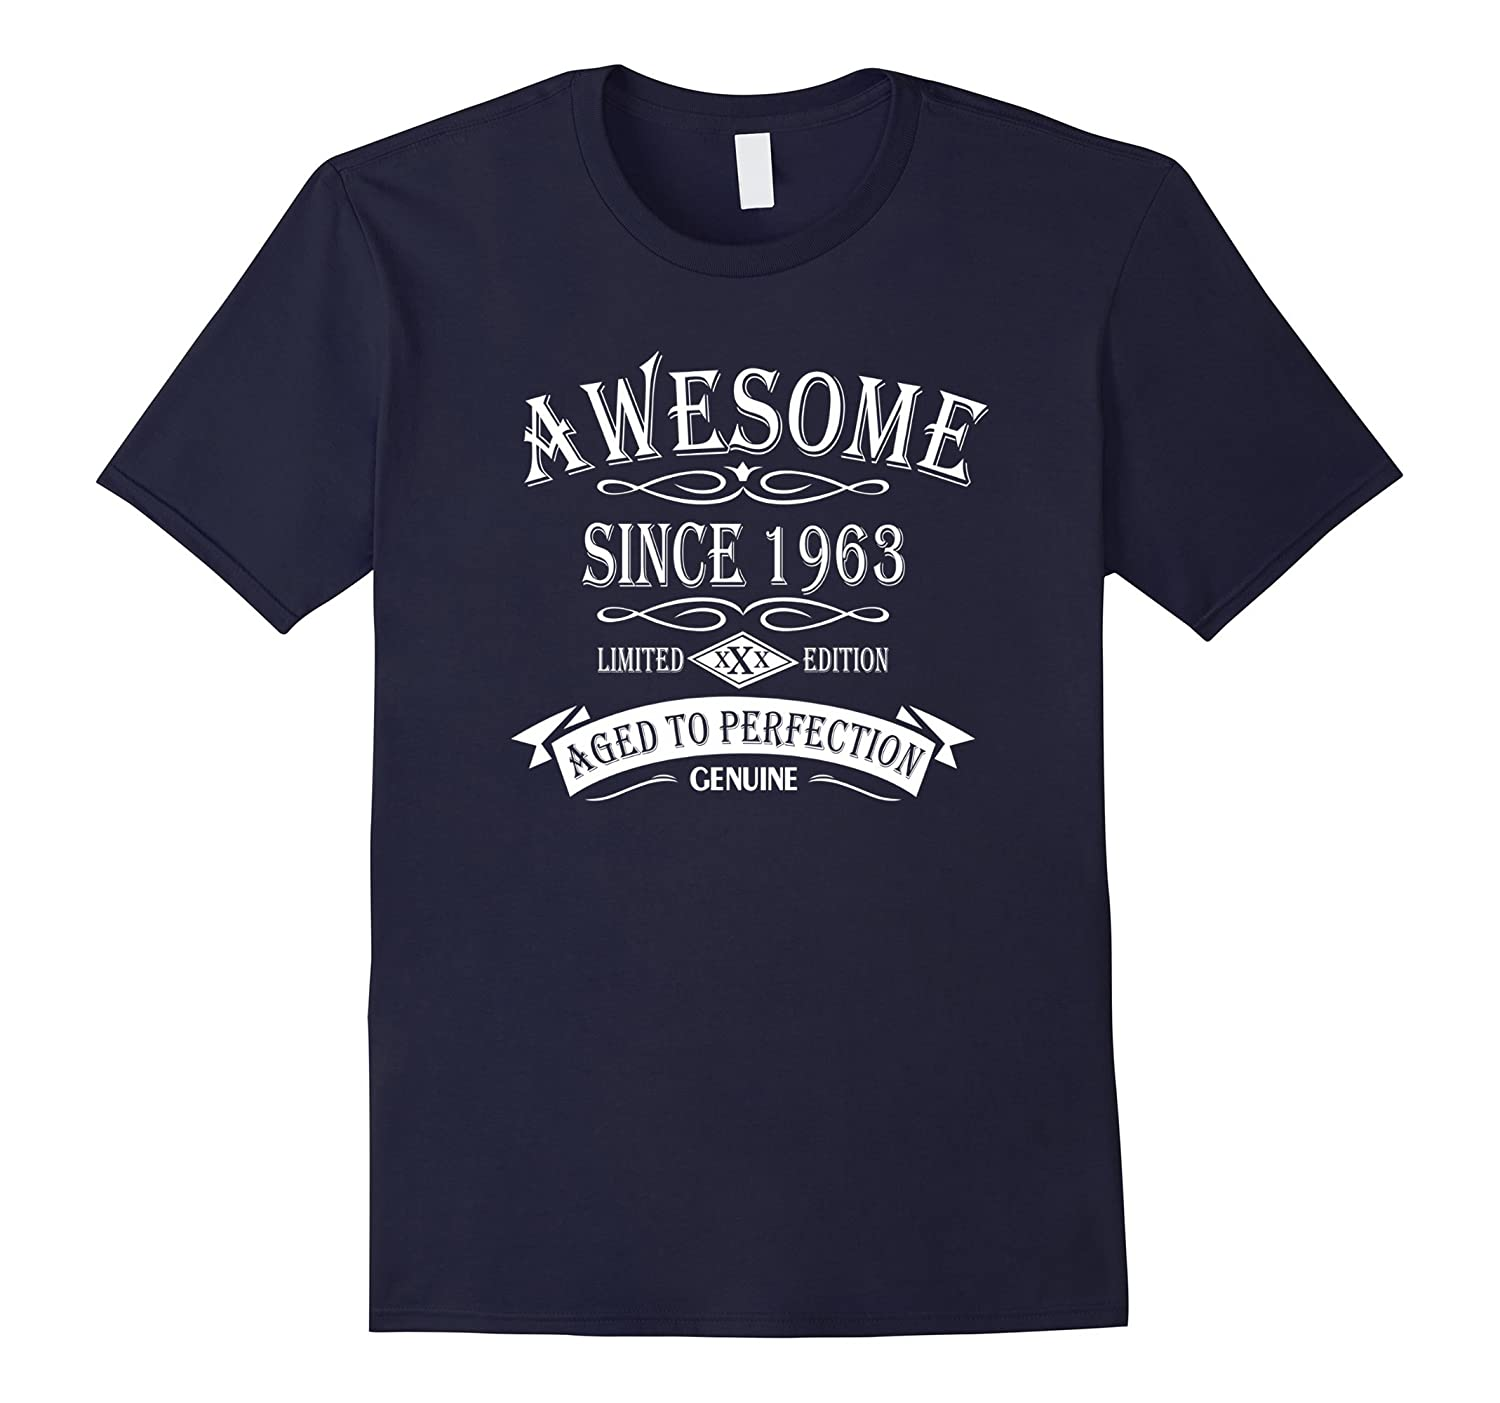 54th Birthday Gift Awesome Since 1963 T-Shirt-Vaci